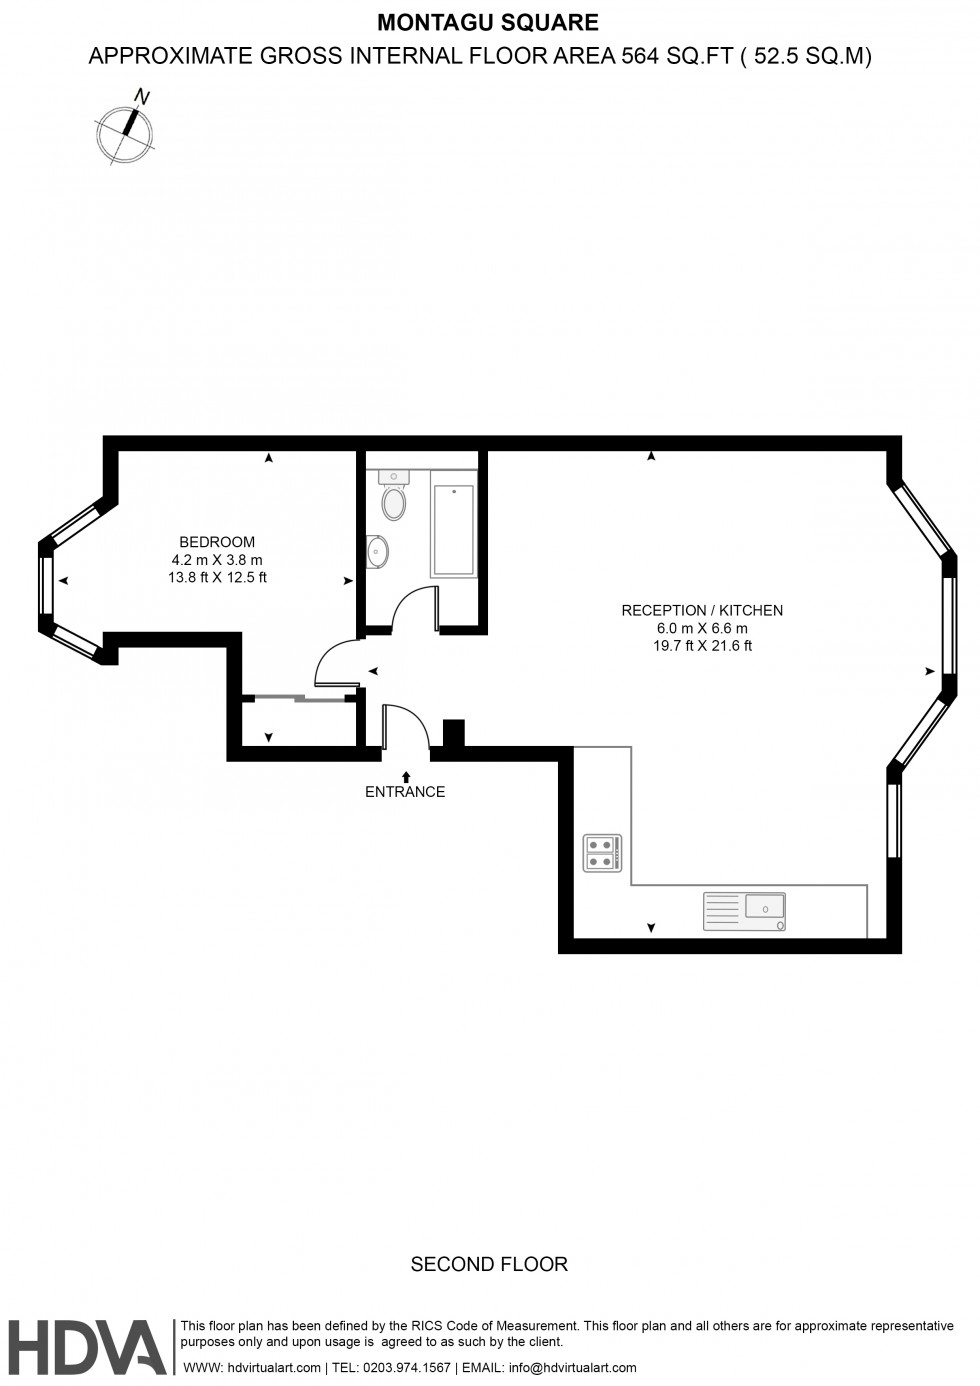 Floorplan for Montagu Square, 42 Montagu Square, London